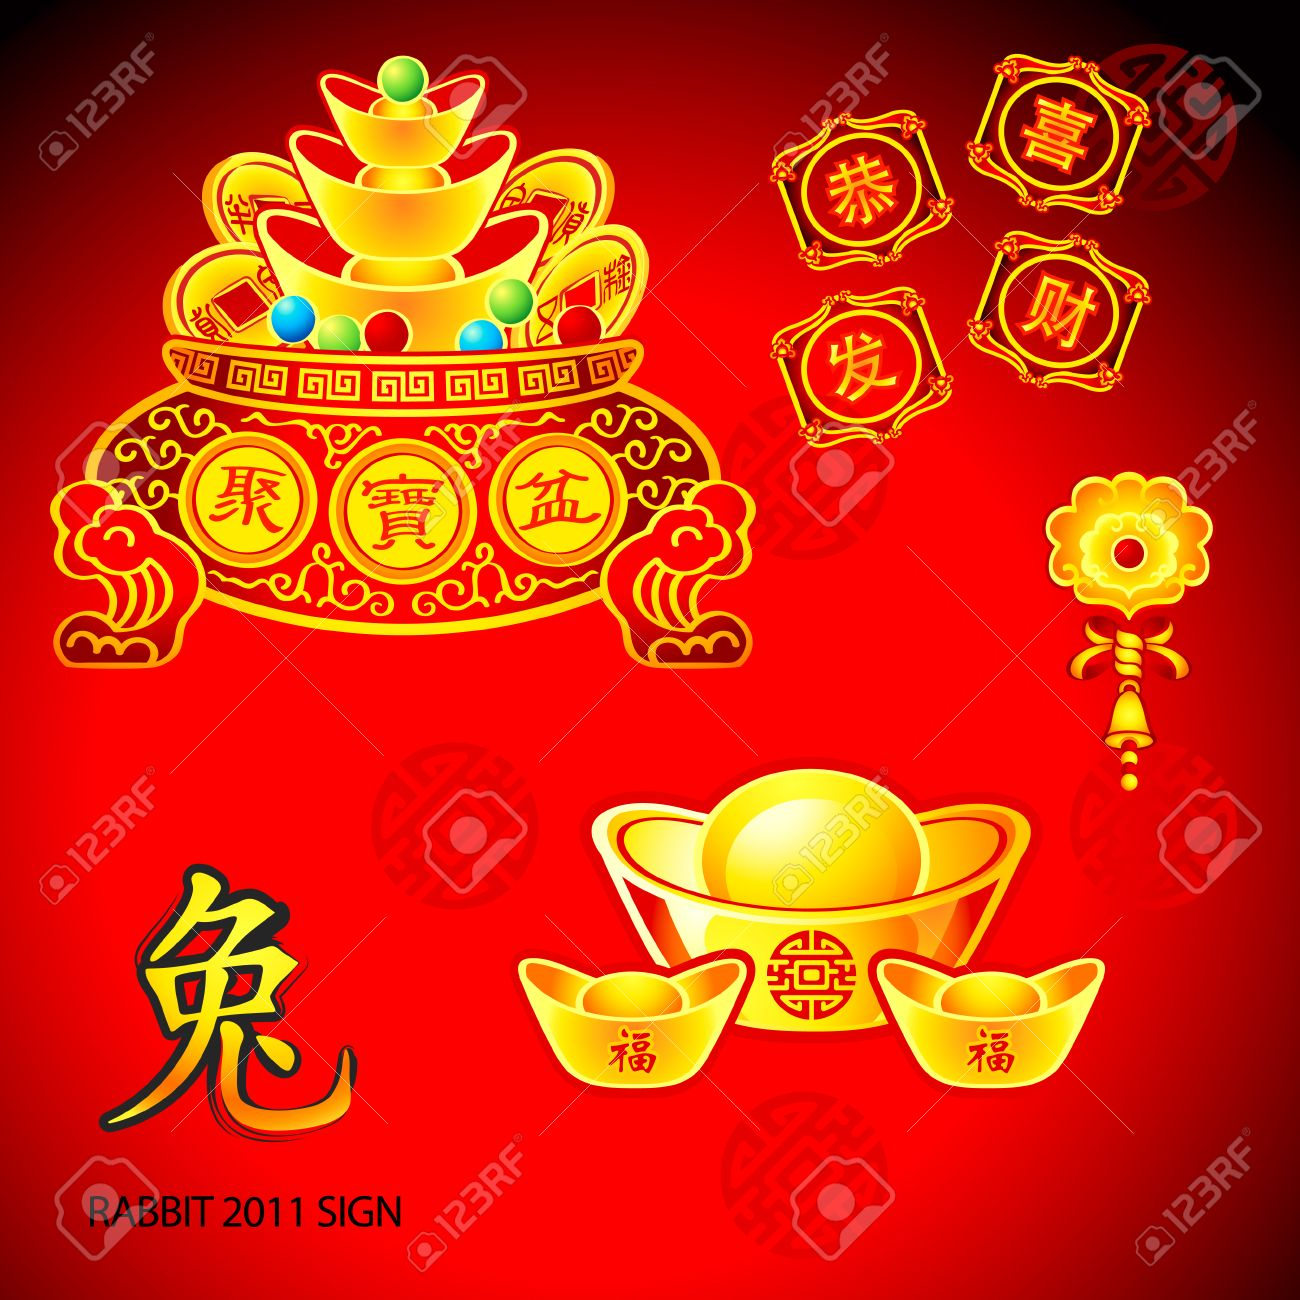 Chinese new year decoration elements gold lucky coins wishes chinese new year decoration elements gold lucky coins wishes bell and rabbit m4hsunfo